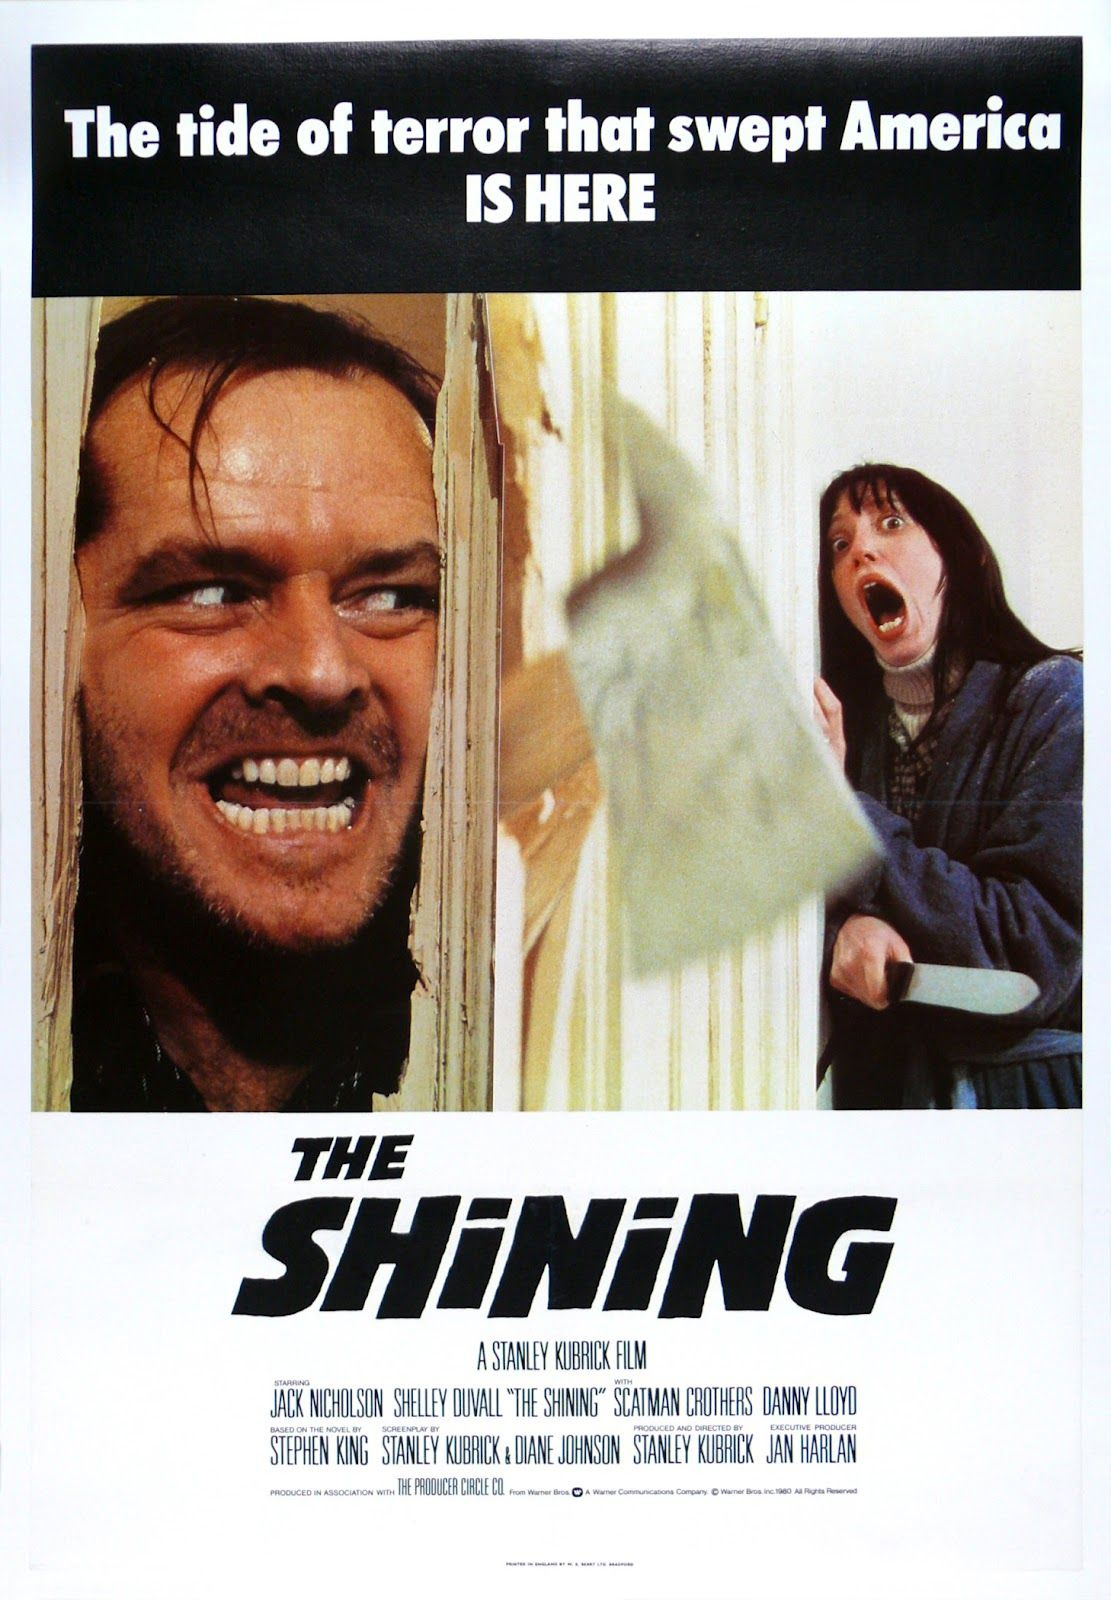 Movie Poster Art The Shining 1980 The Shining Poster Best Psychological Thriller Movies The Shining